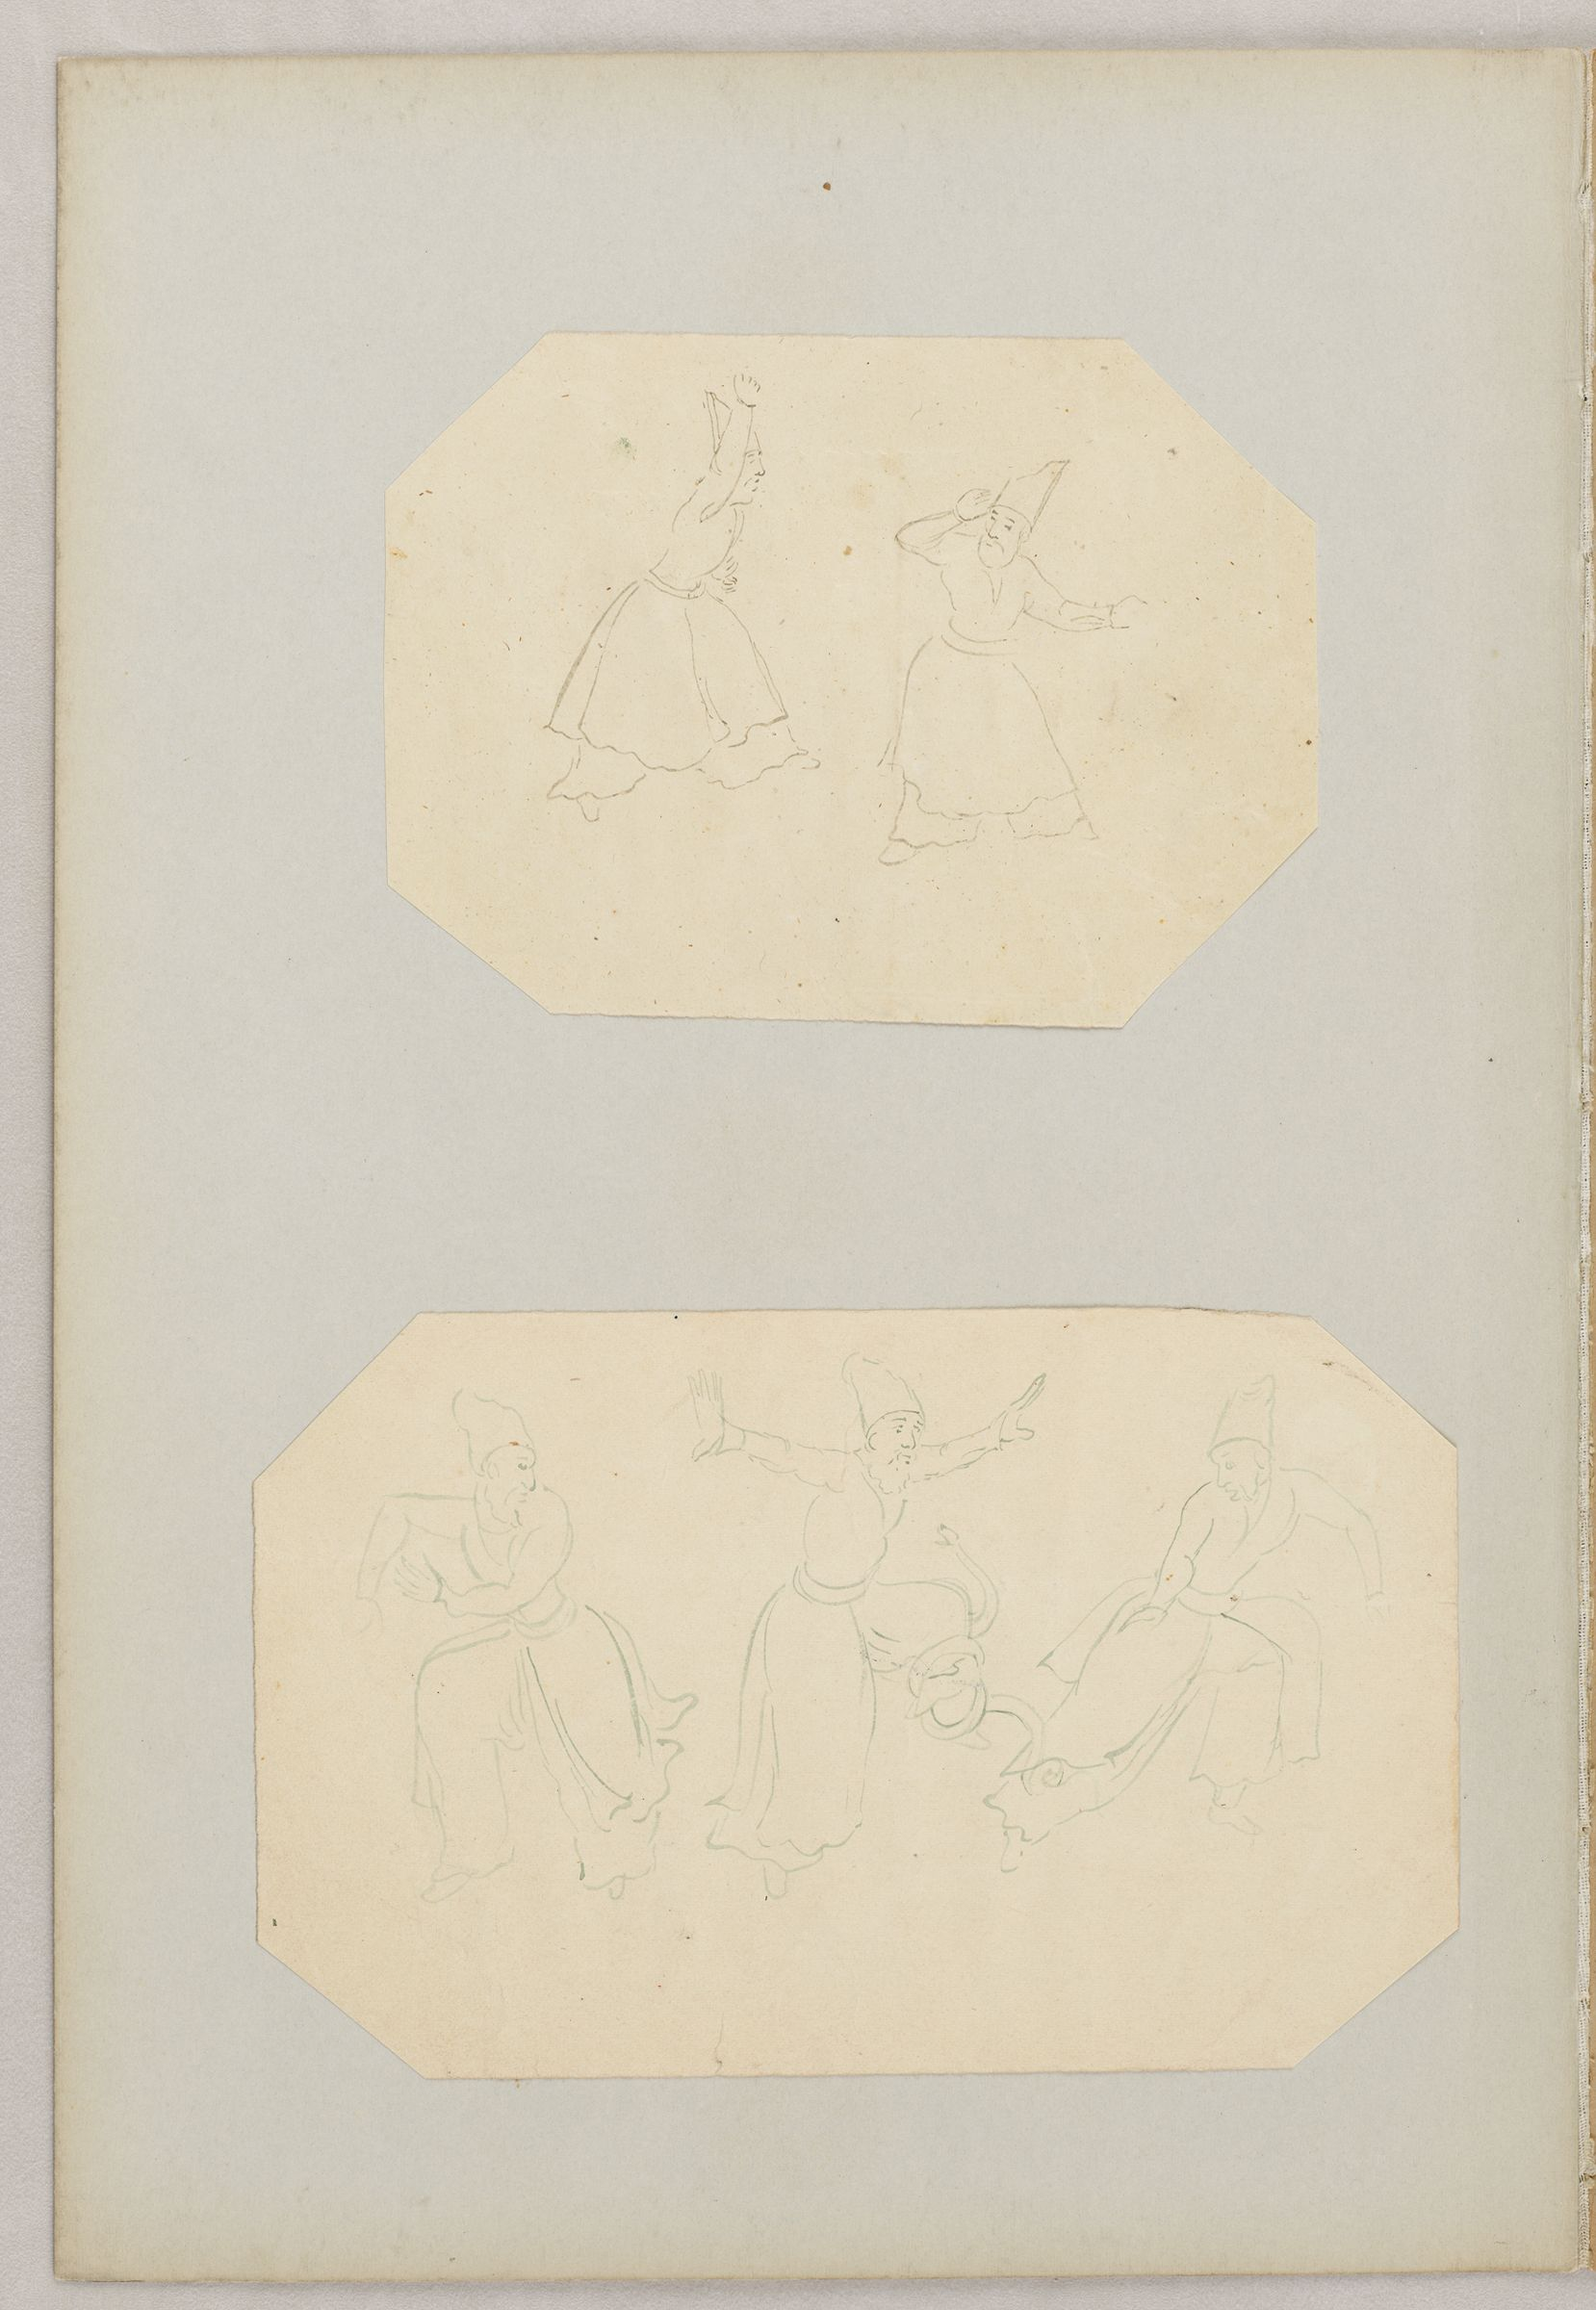 Folio 26 From An Album Of Drawings And Paintings: Two Sheets: Pair Of Dervishes; Three Dervishes With Snake  (Recto); Blank Page (Verso)